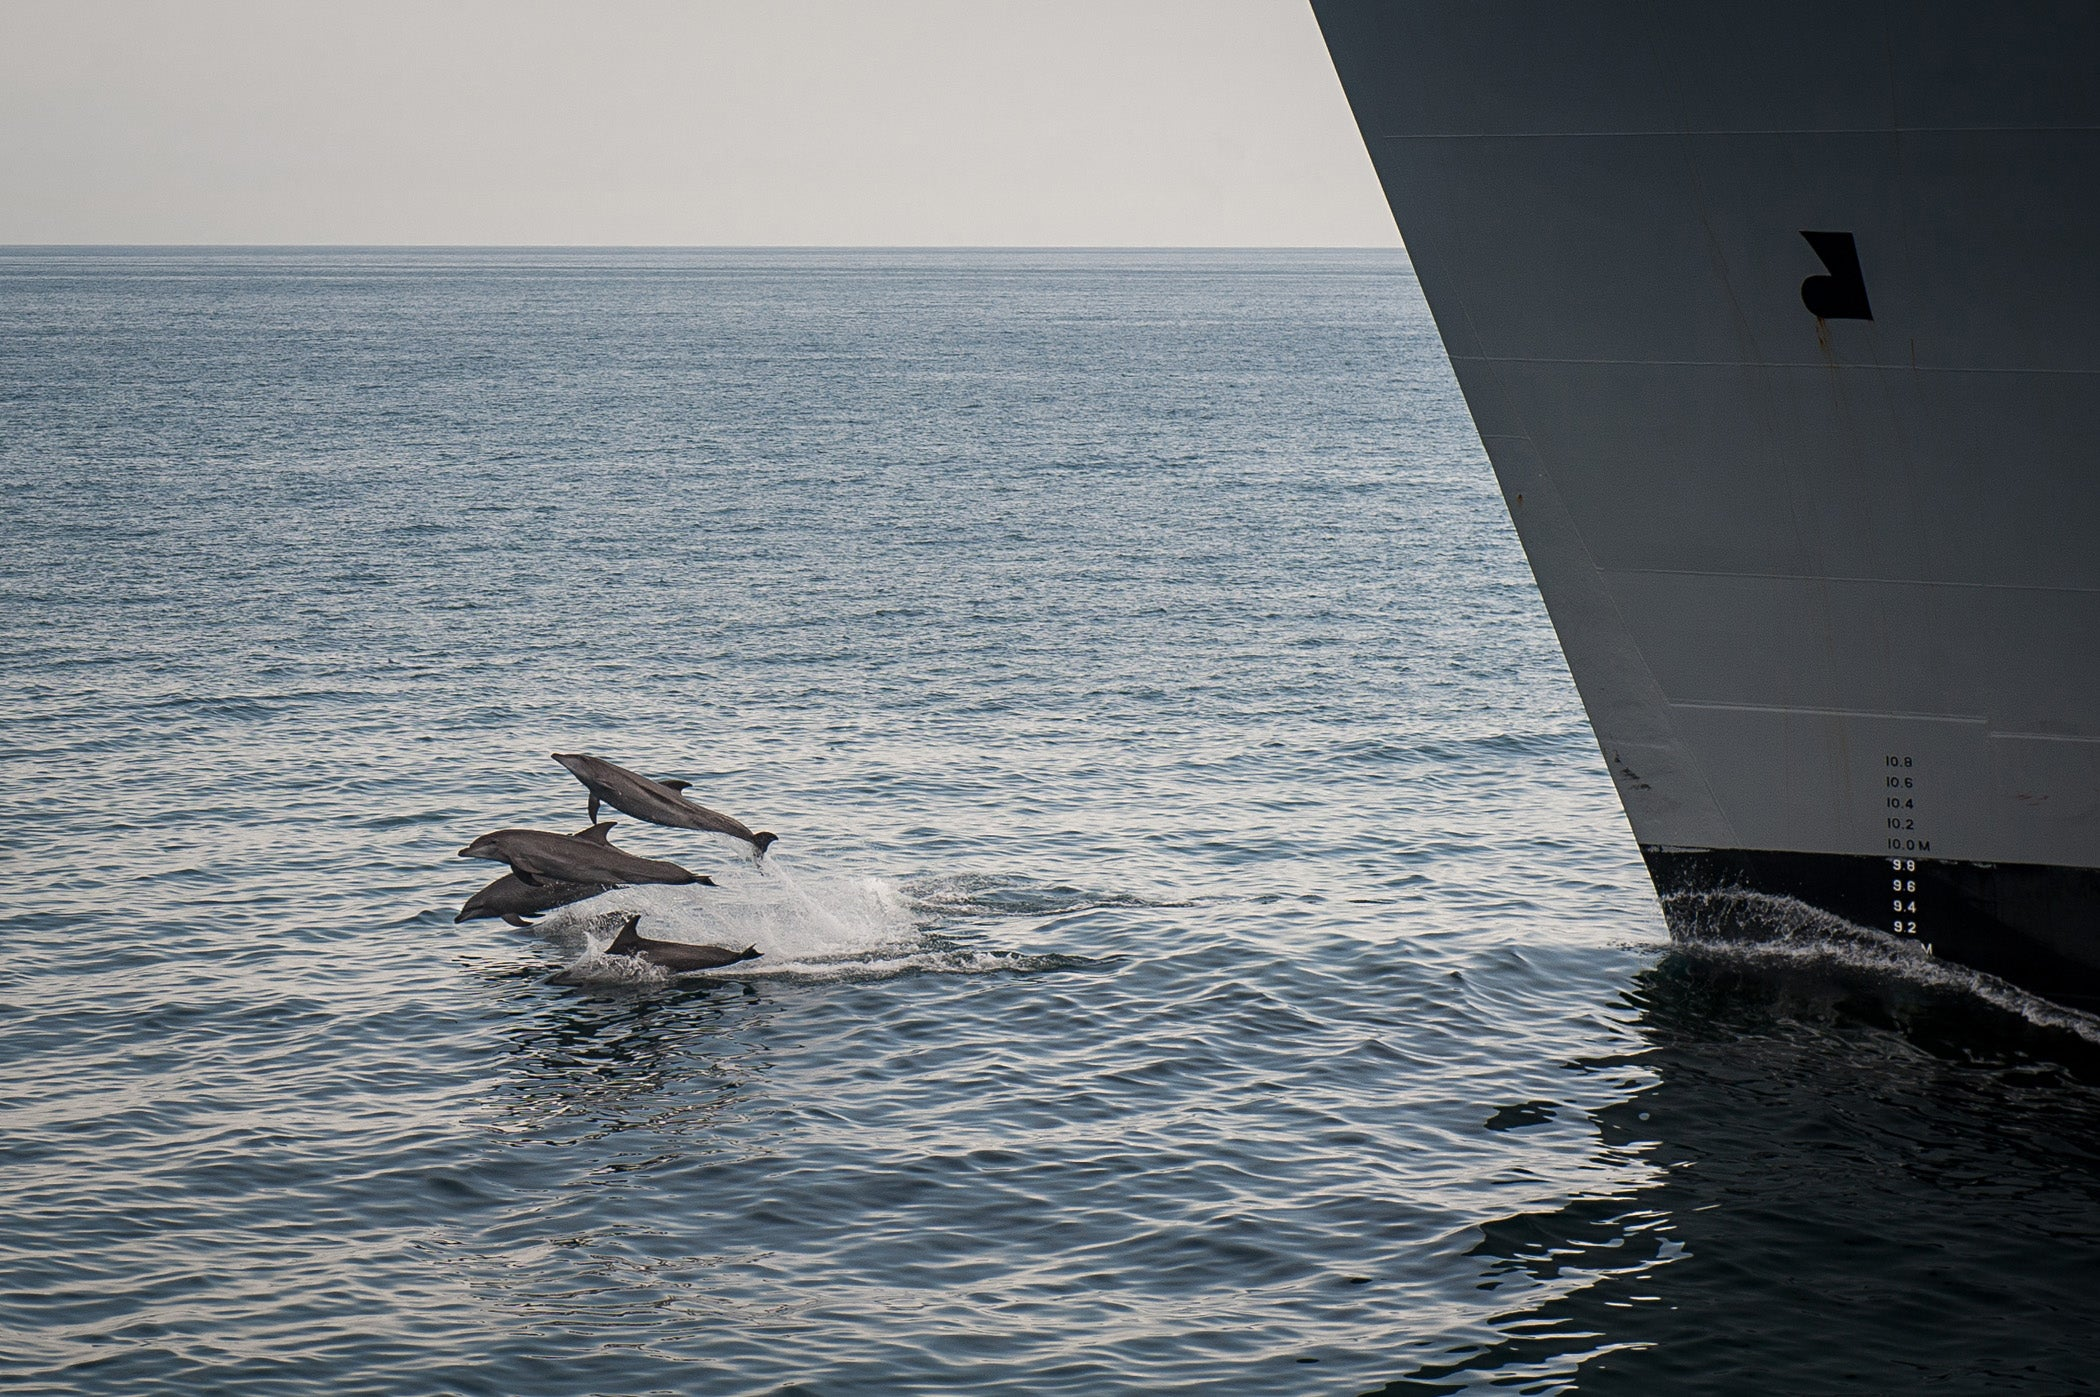 Navy Agrees To Limit Sonar Testing In California And Hawaii To Protect The Whales